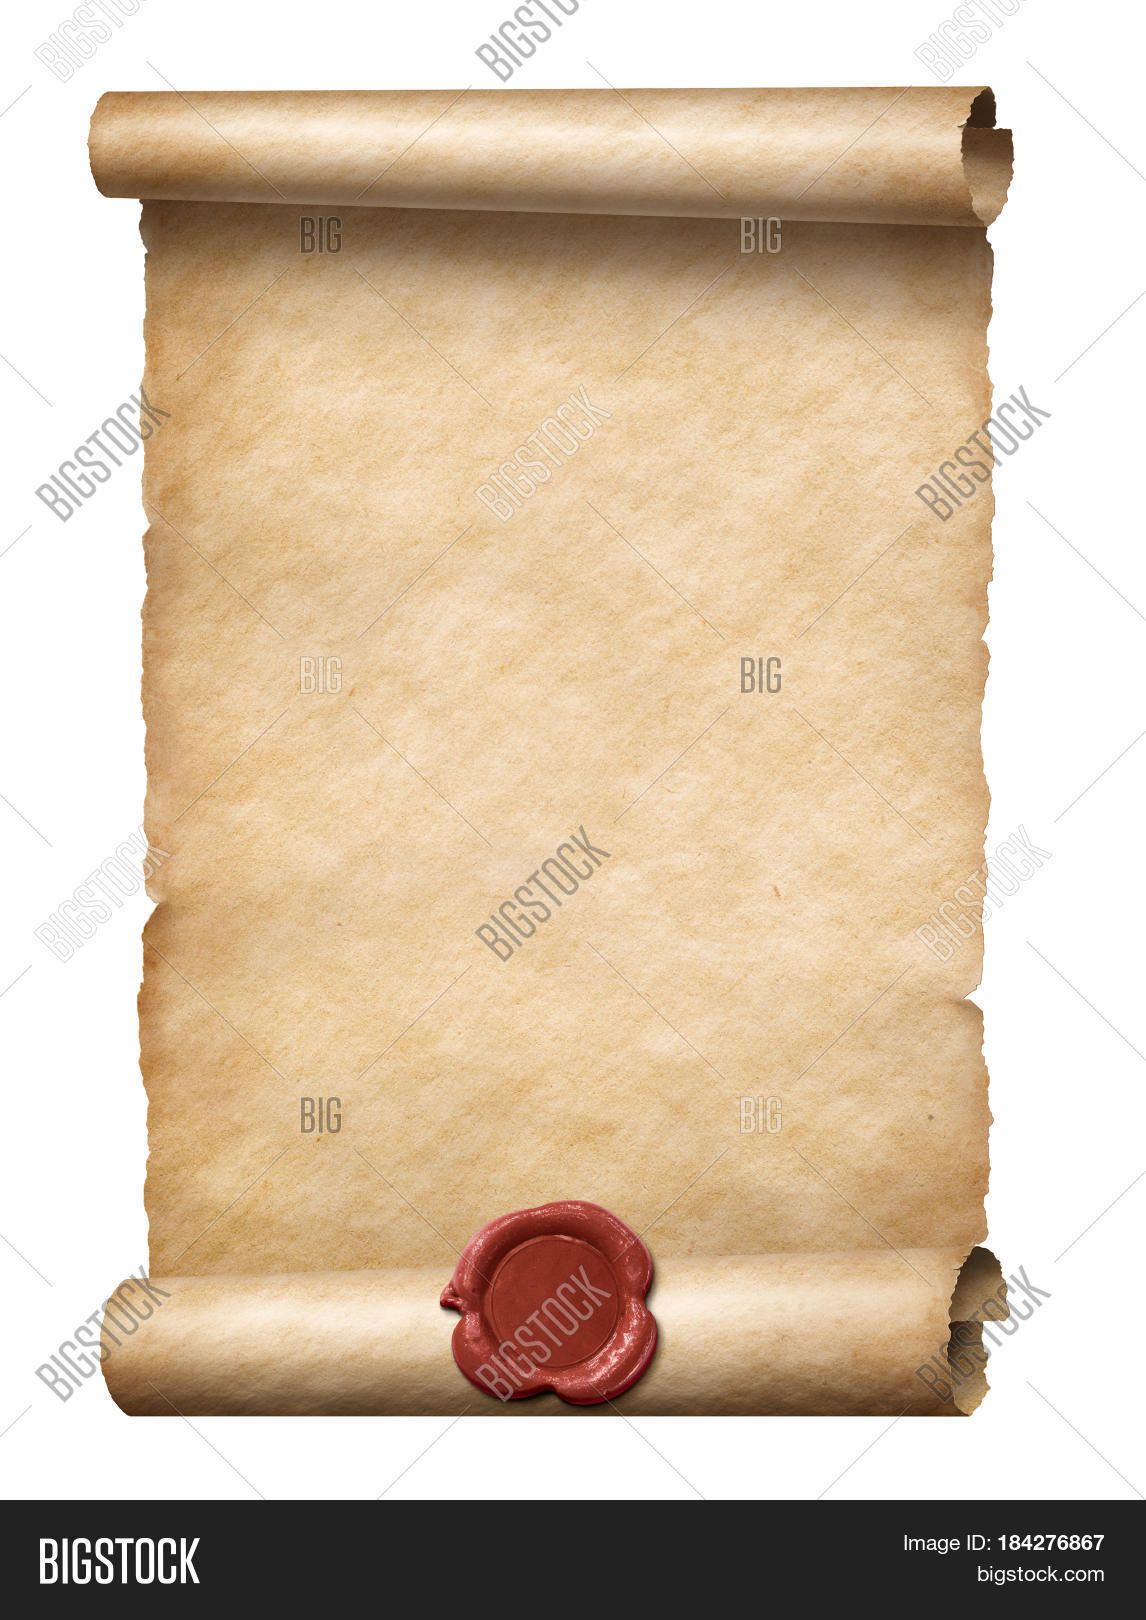 3d Scroll Of Parchment Photo: Old Scroll Red Wax Seal 3d Image & Photo